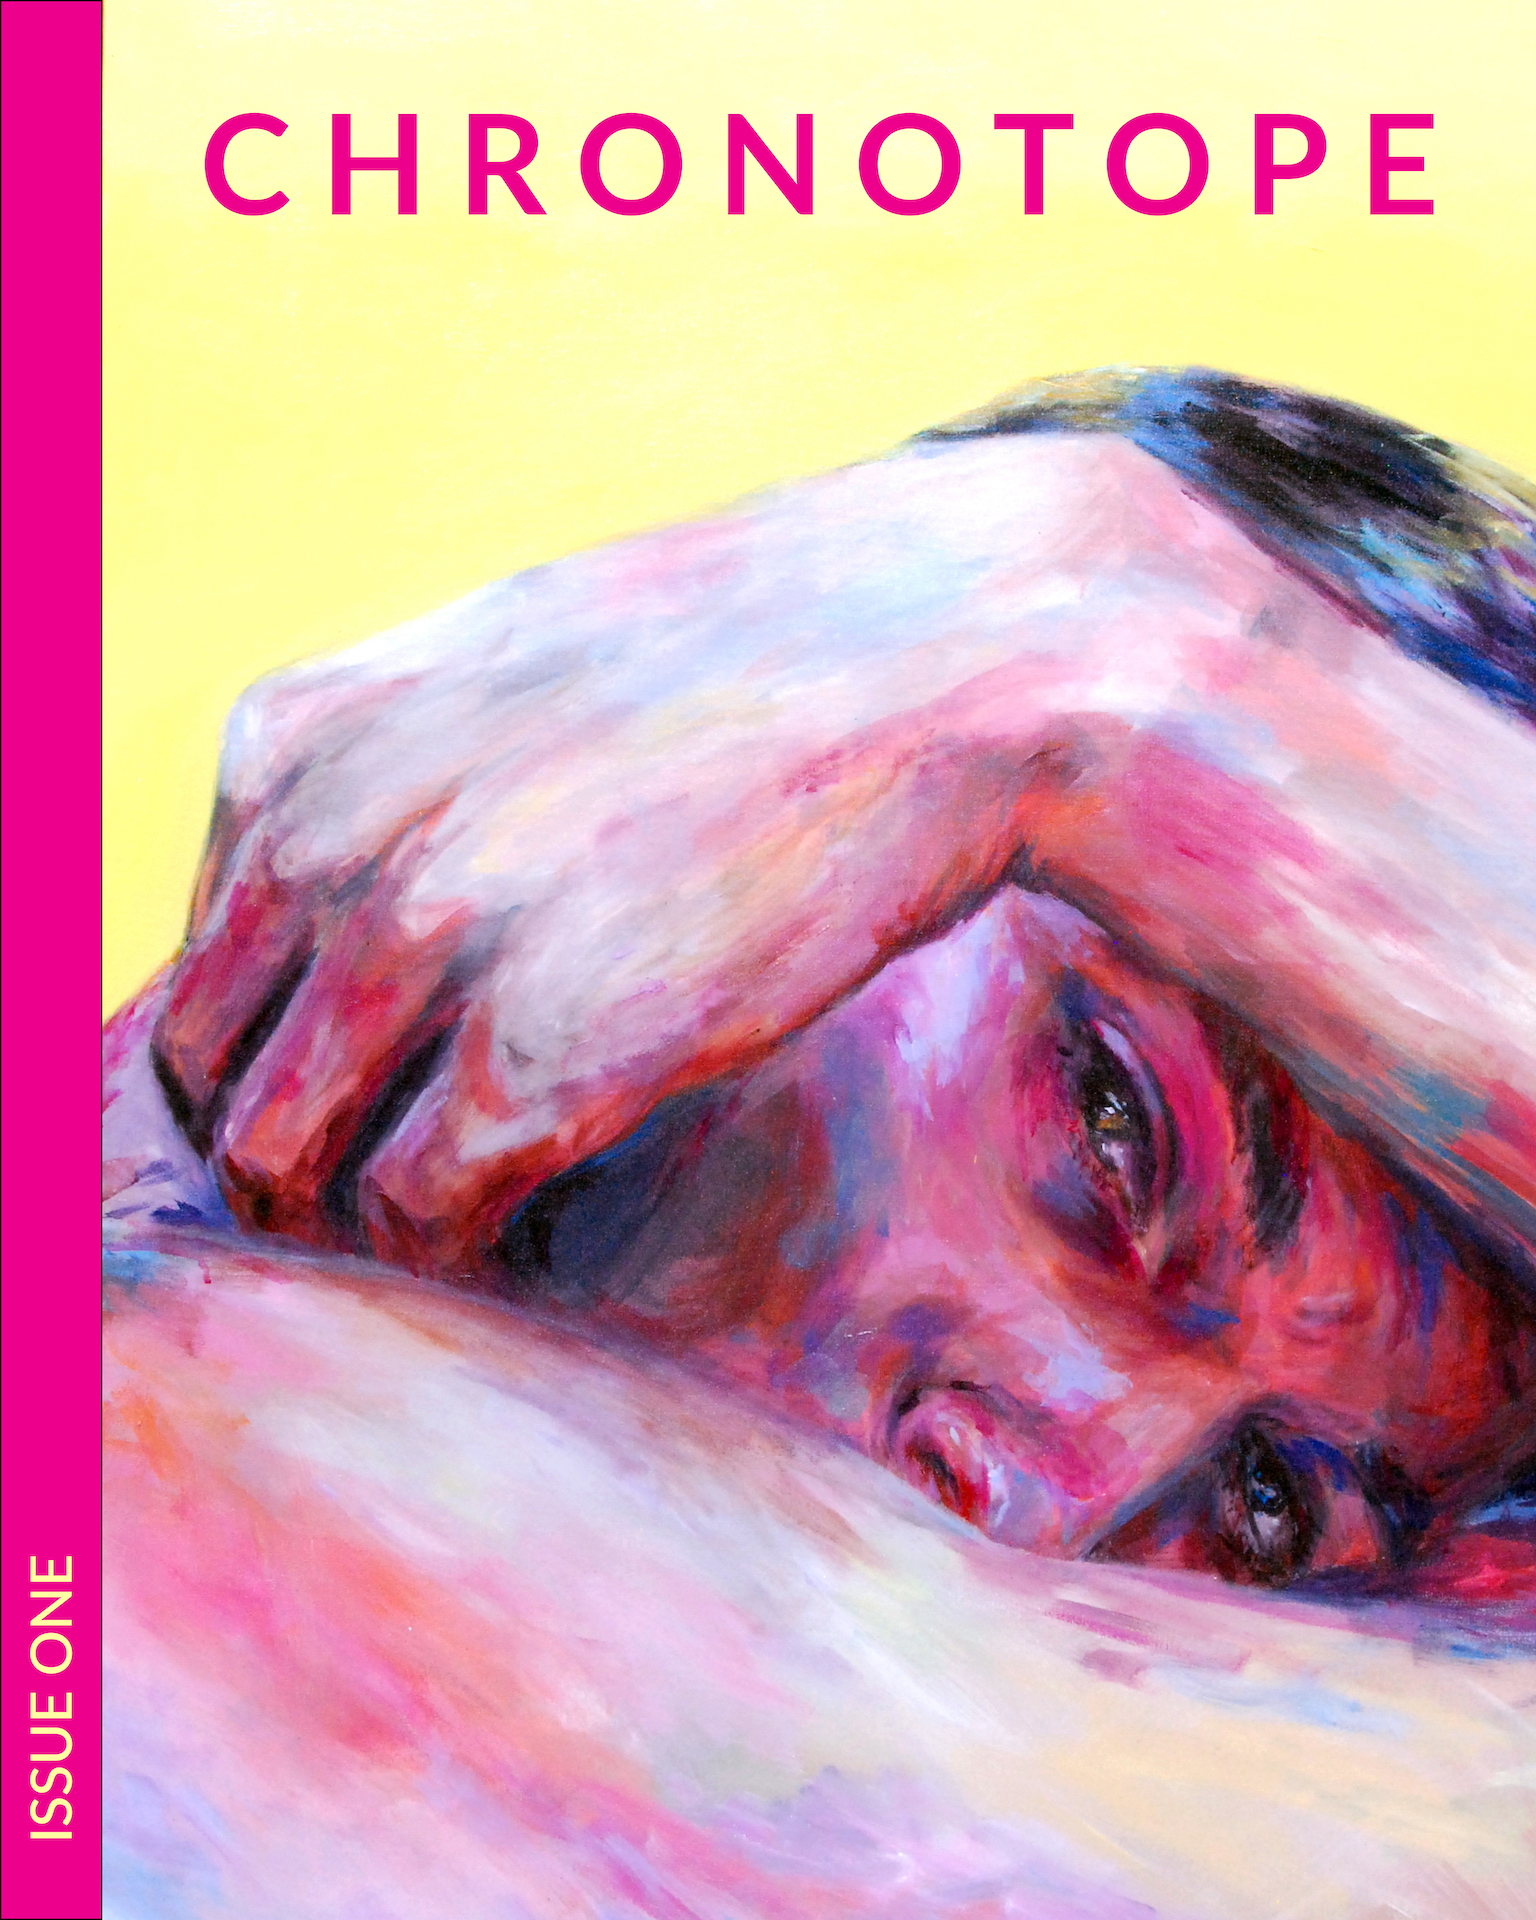 Chronotope Mag - Issue 1 Cover.jpg